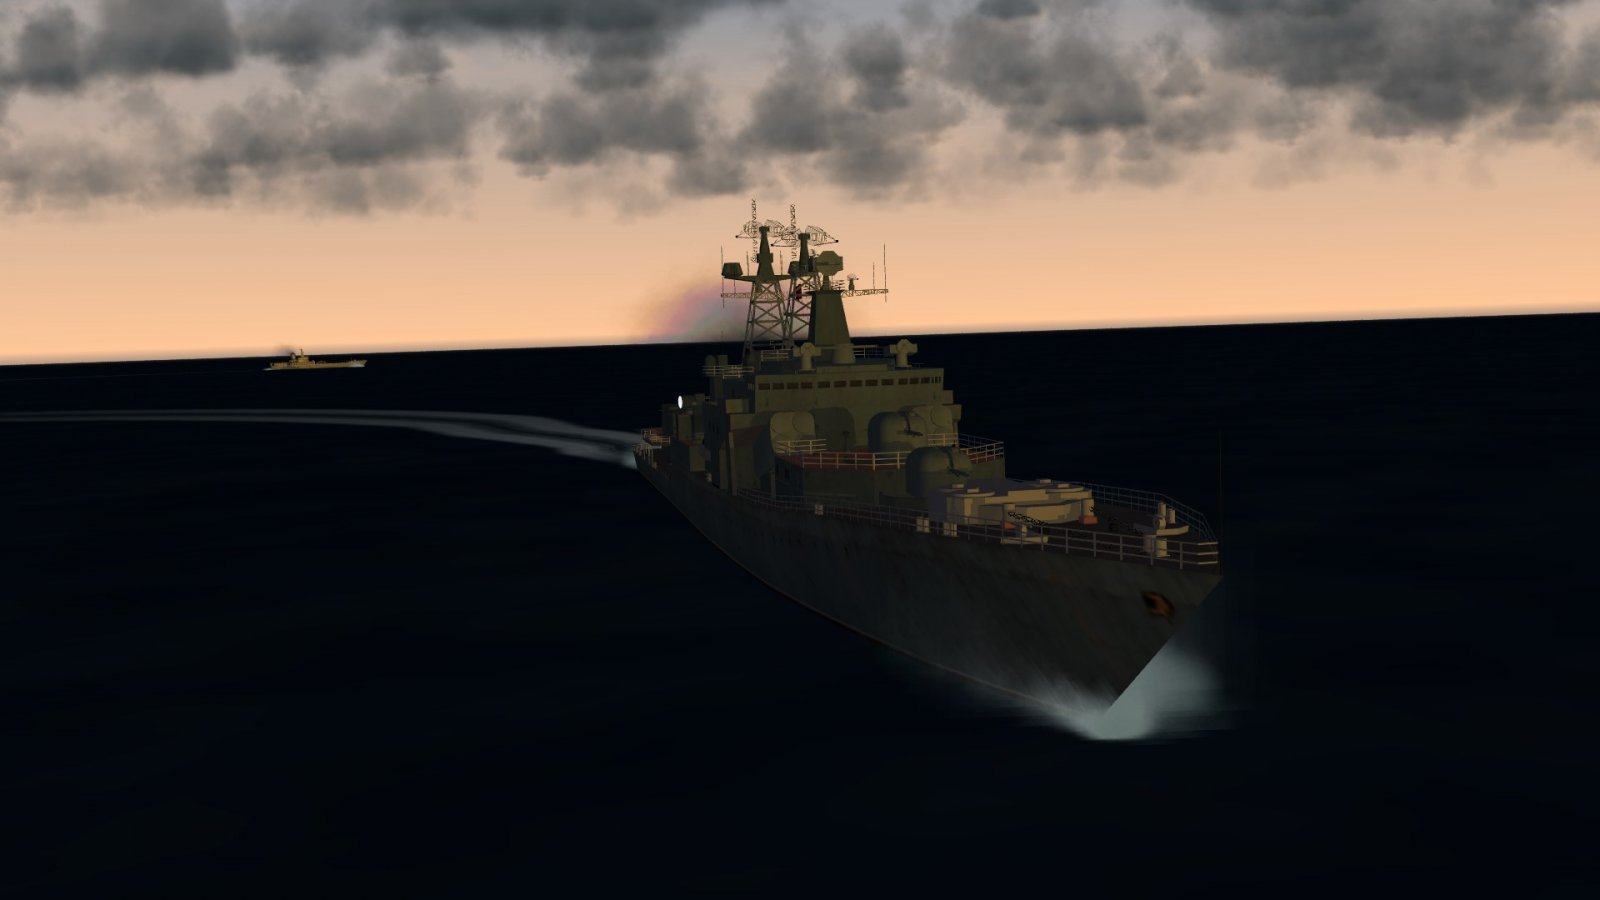 A Udaloy Makes An Aggressive Turn in the North Pacific Sunset